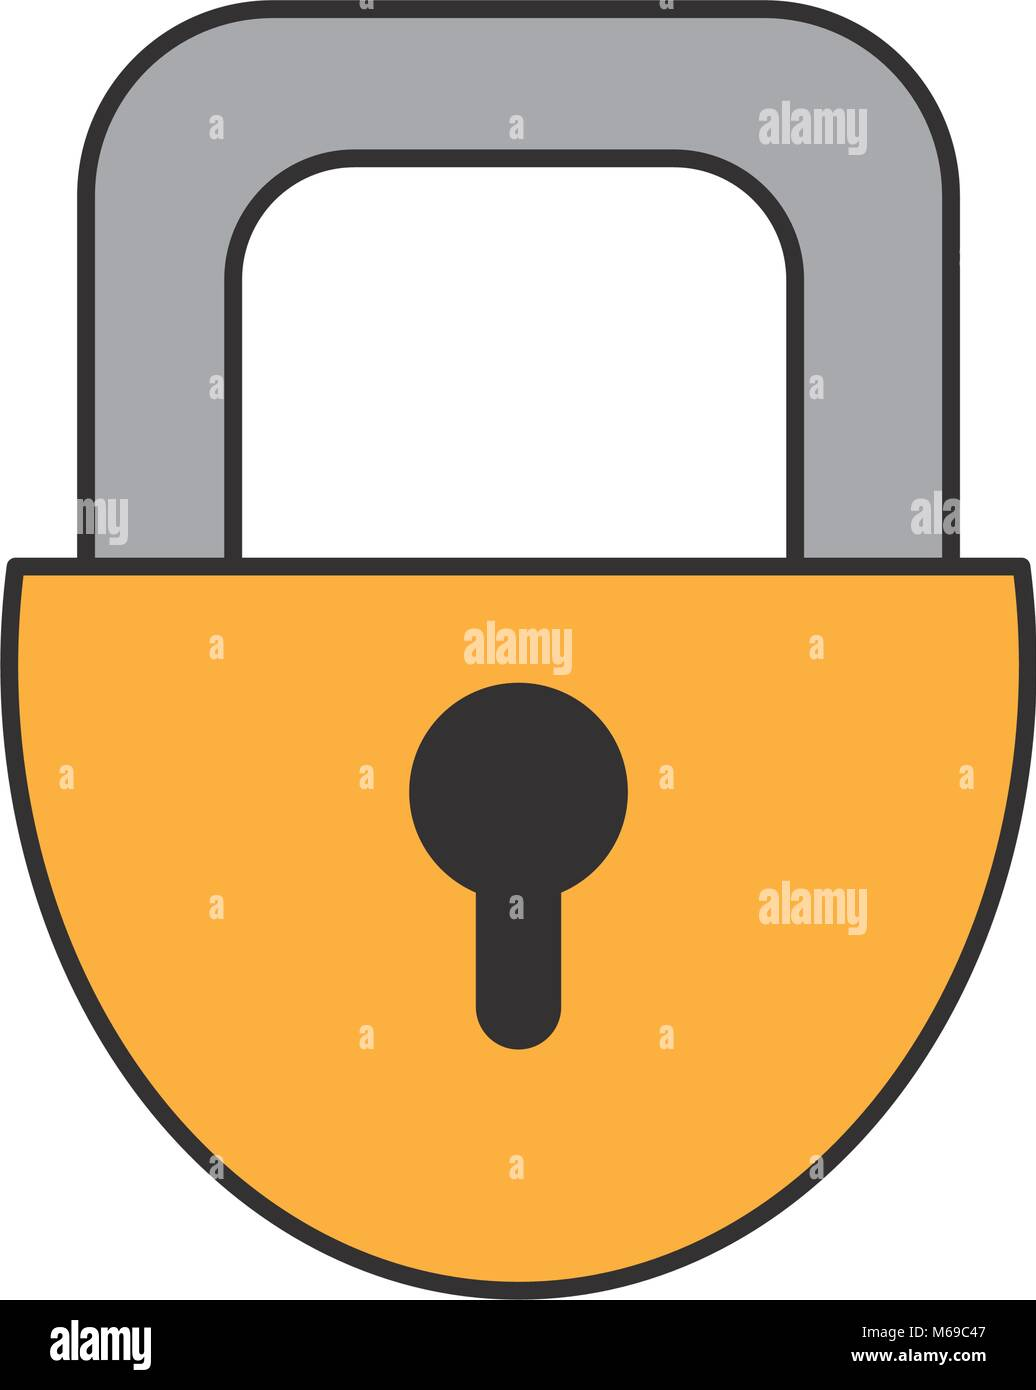 padlock security object to privacy access - Stock Vector